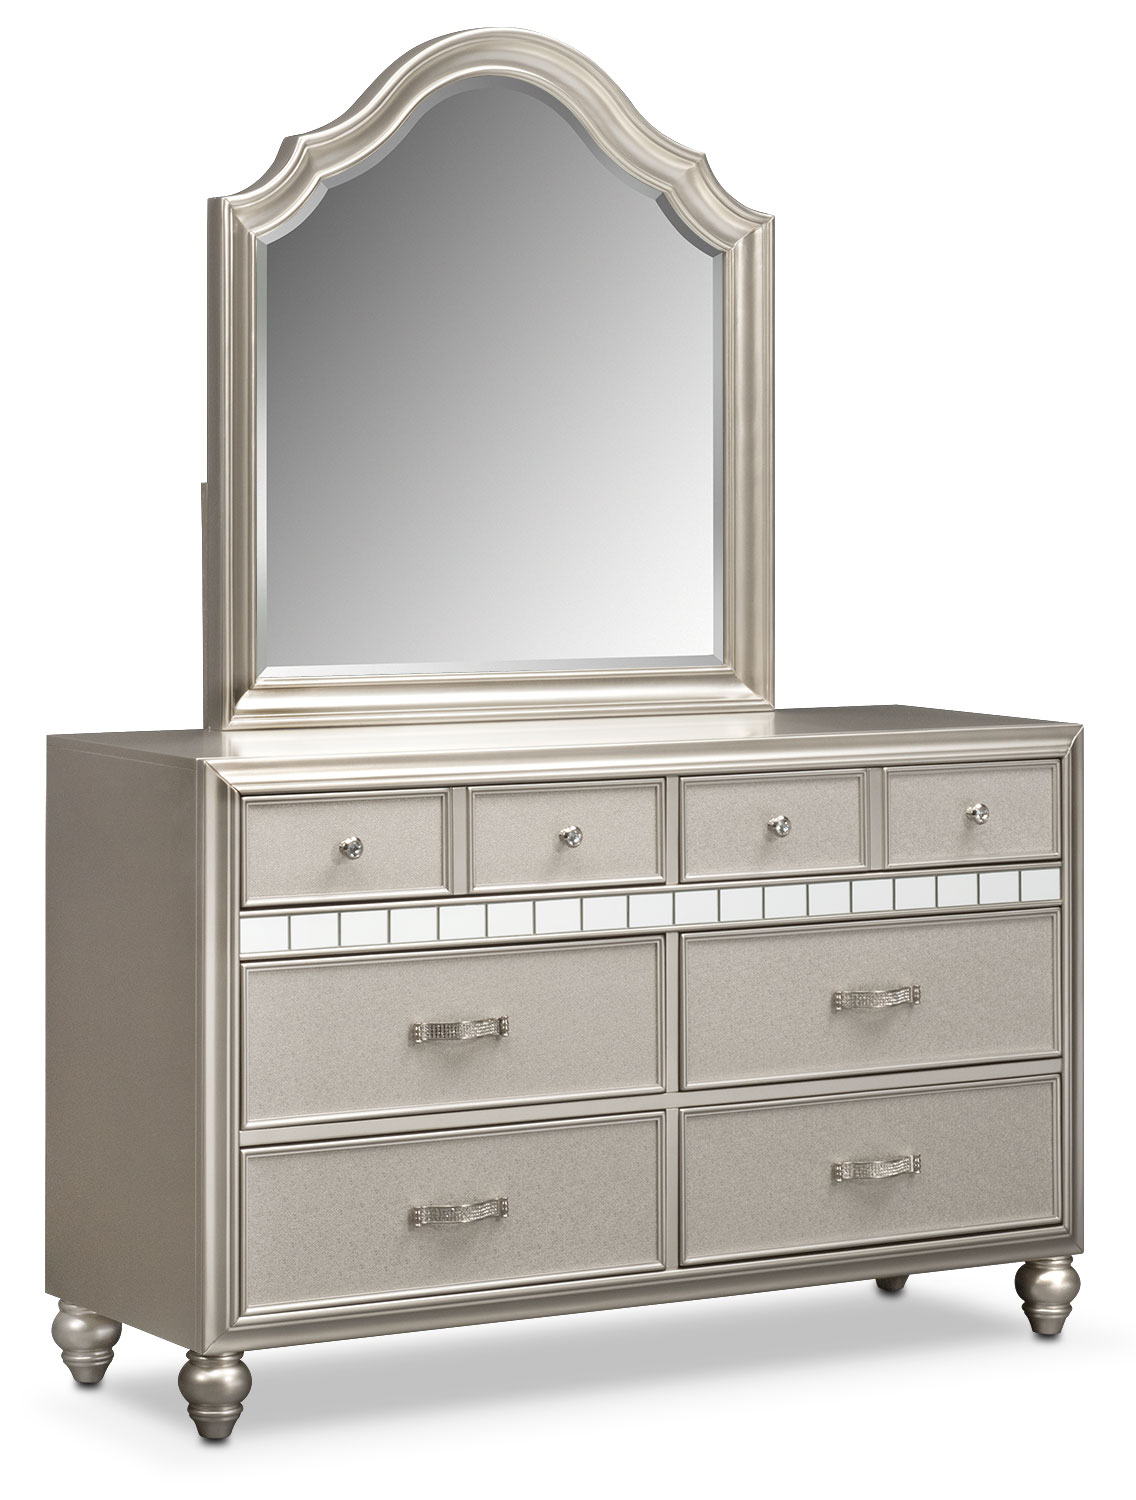 Bedroom Furniture - Serena Dresser and Mirror - Platinum